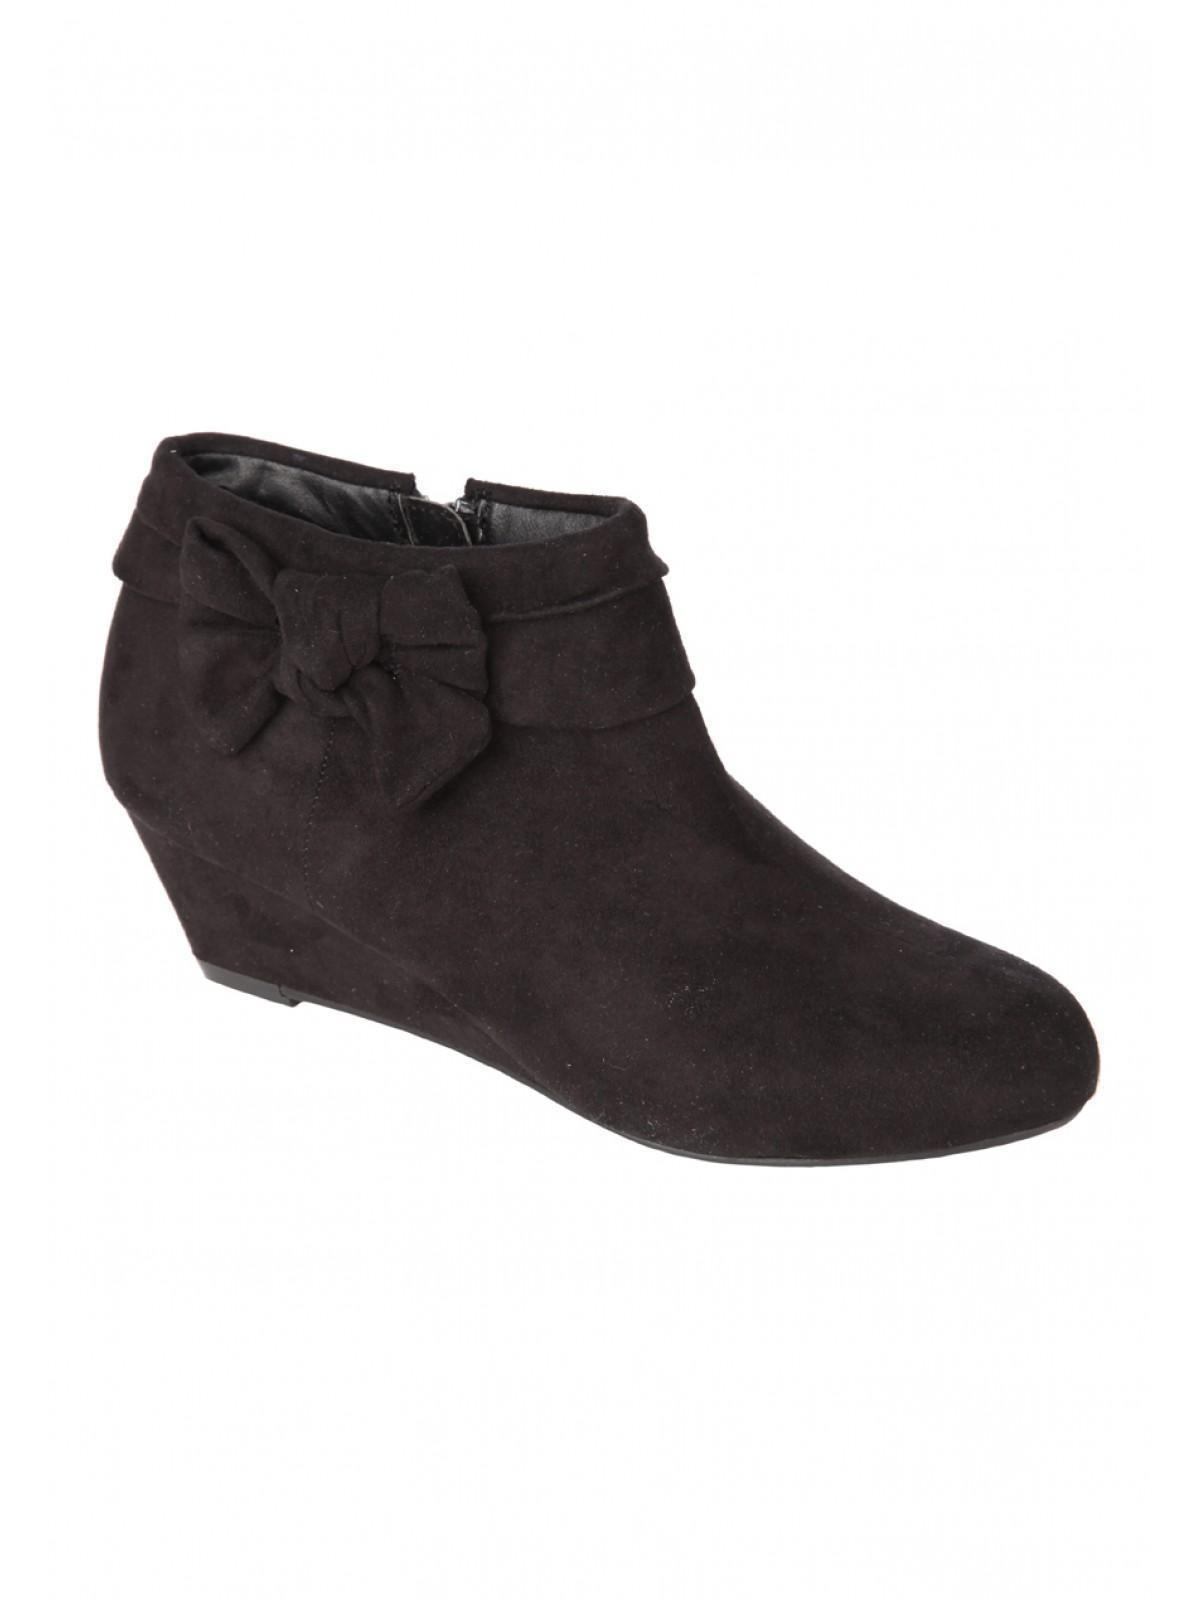 Girls Older Girls Wedge Boot | Peacocks